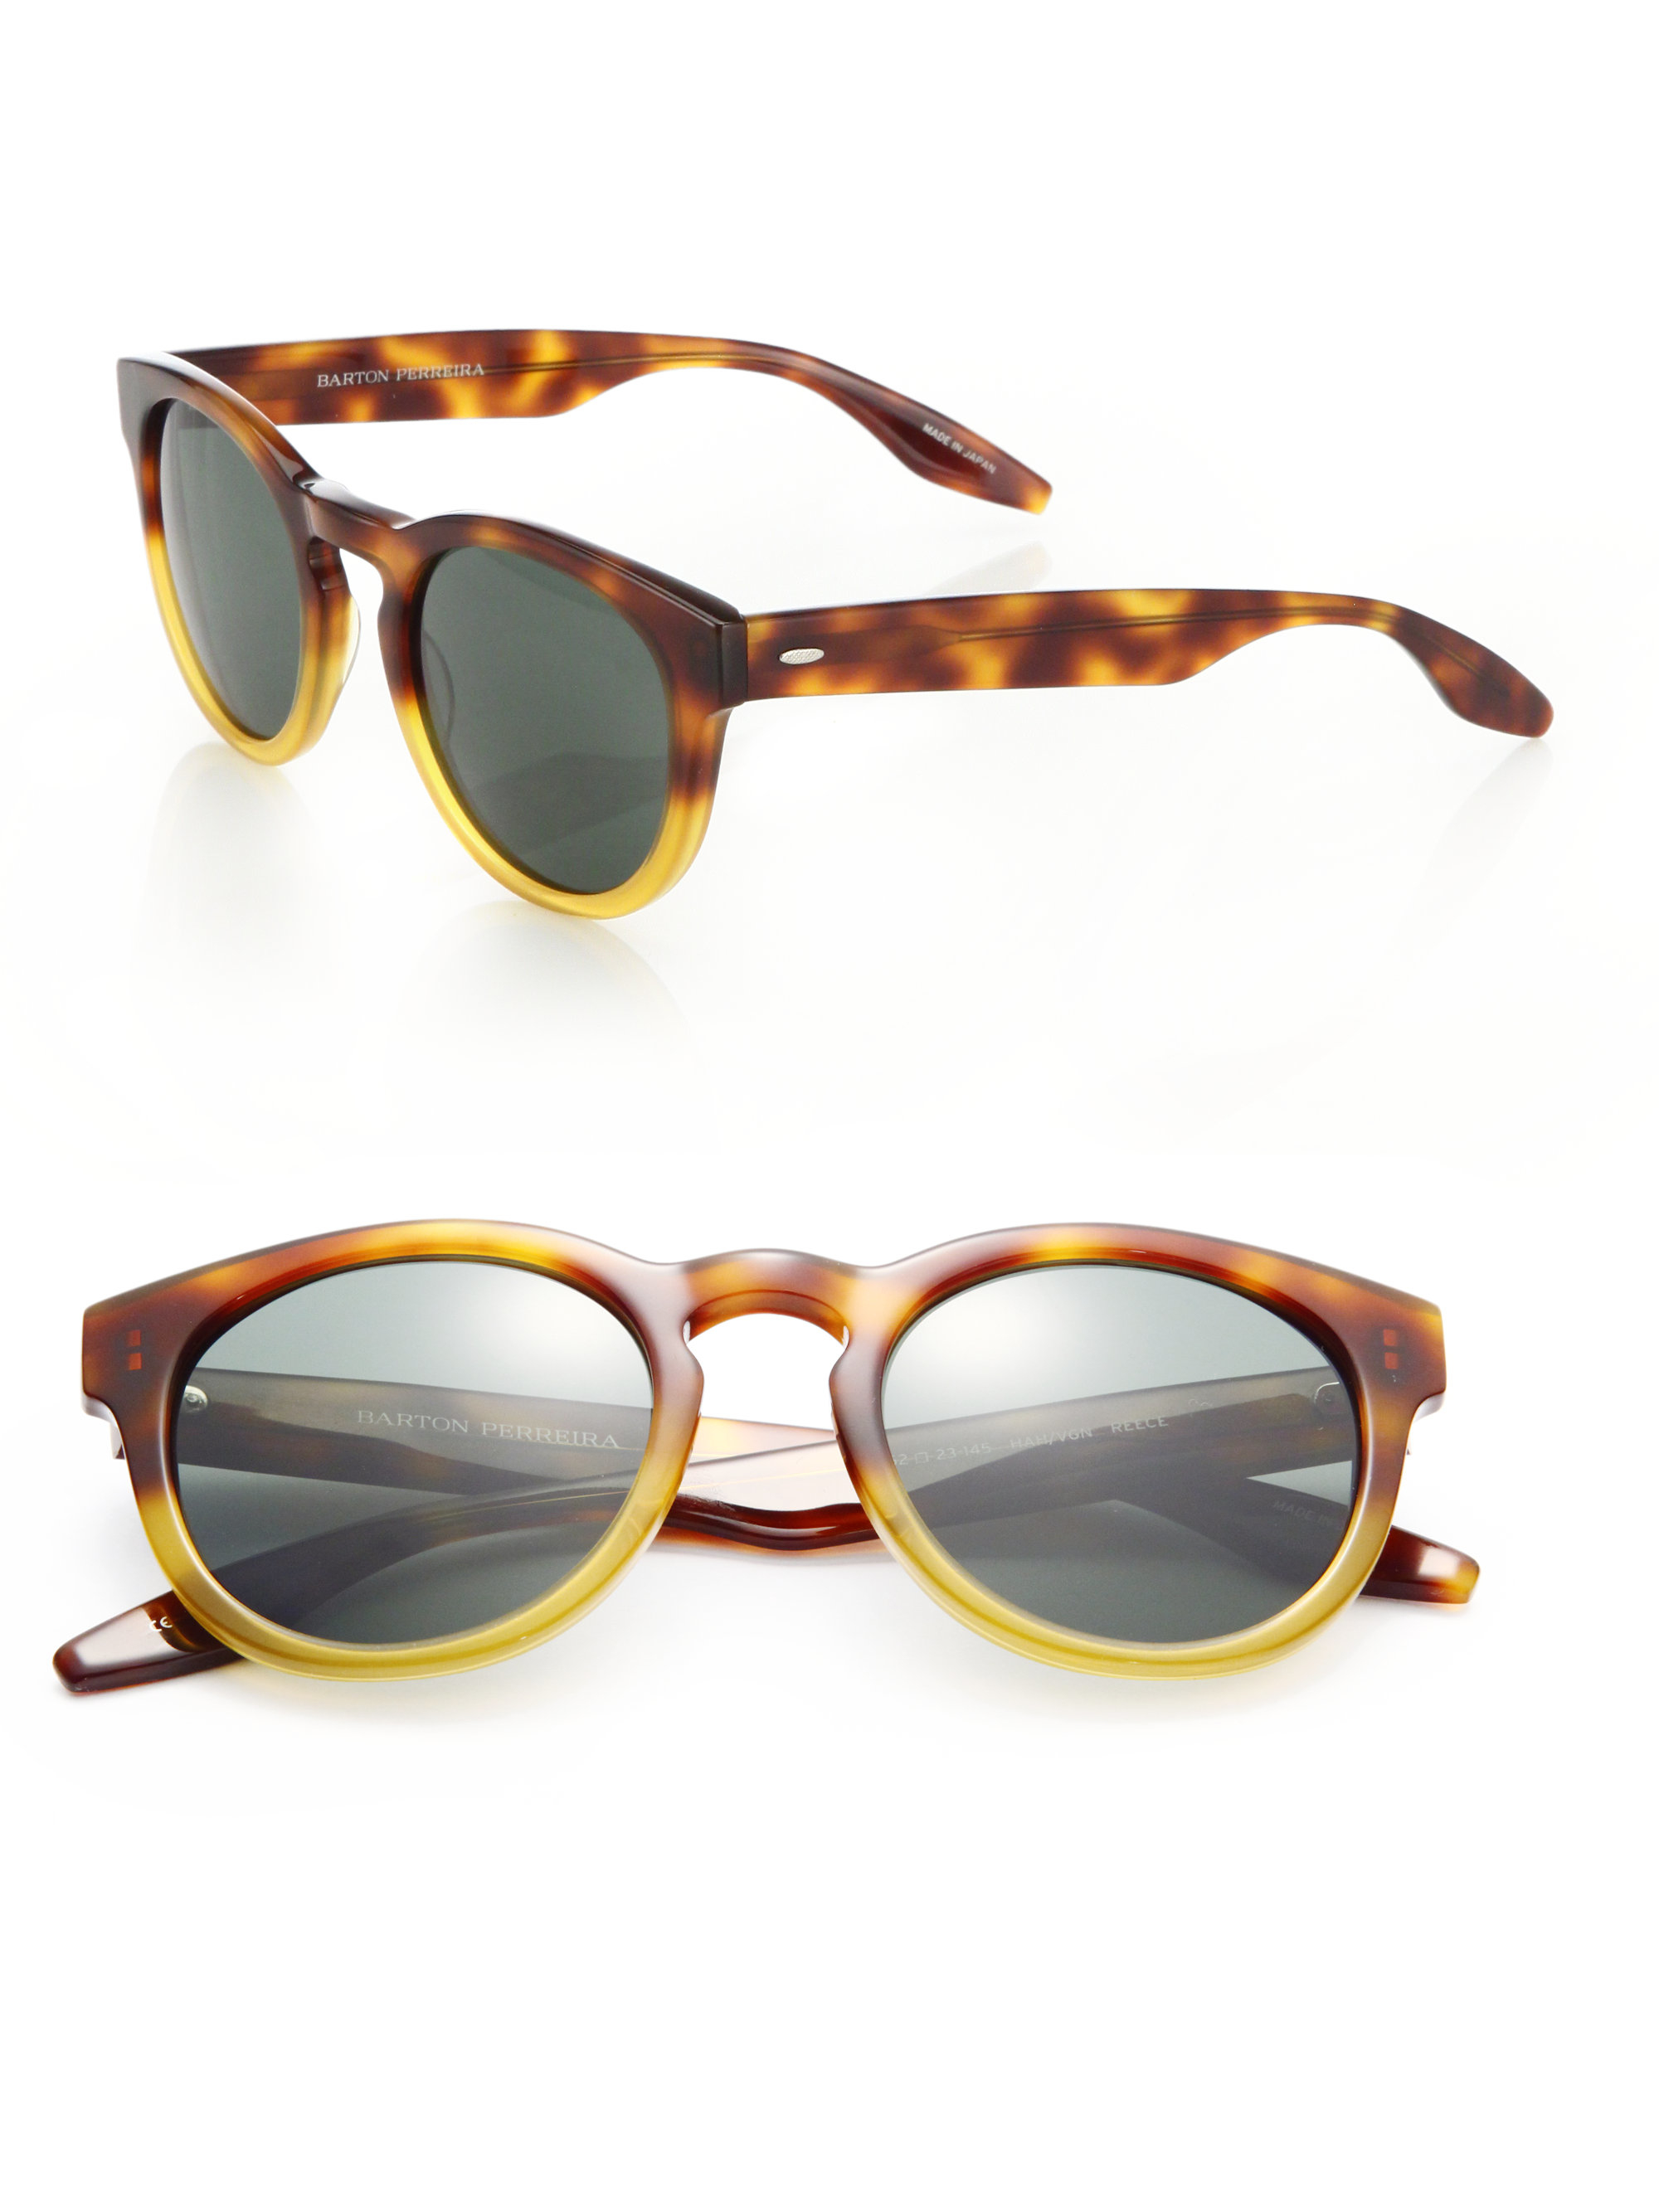 Lyst - Barton Perreira Reece 52mm Round Sunglasses in Brown for Men